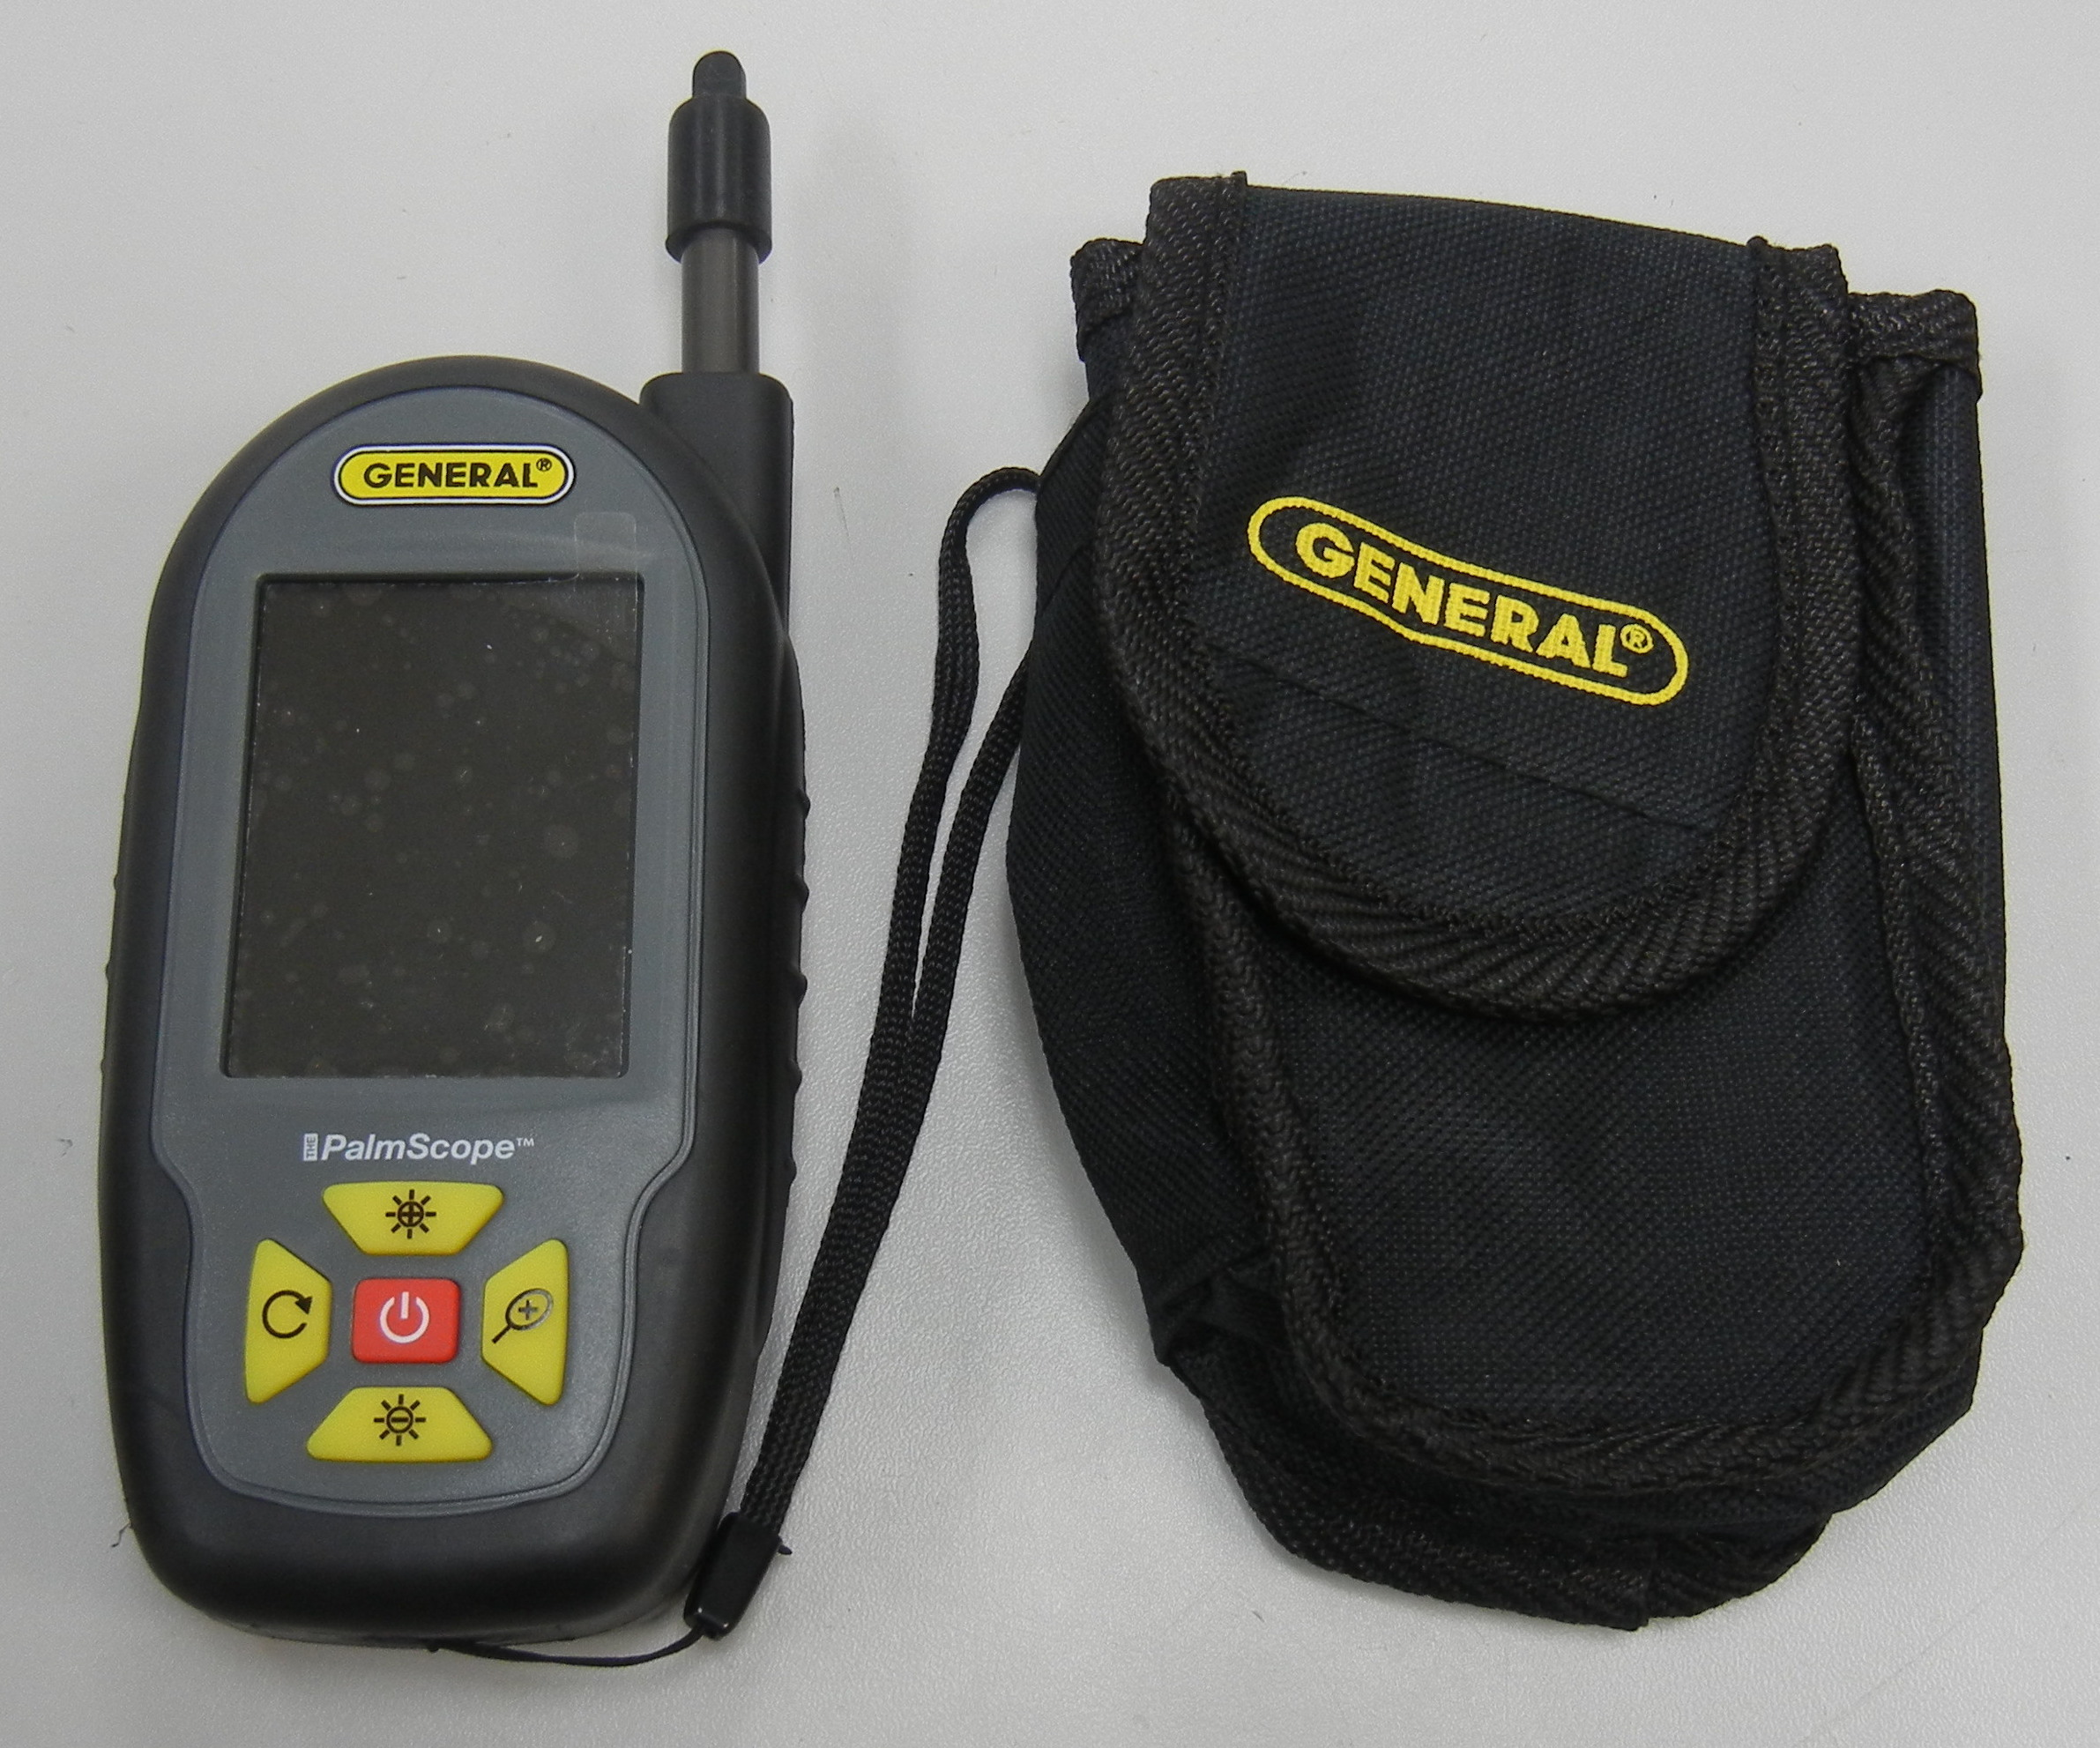 GENERAL - THE PALM SCOPE - INSPECTION CAMERA